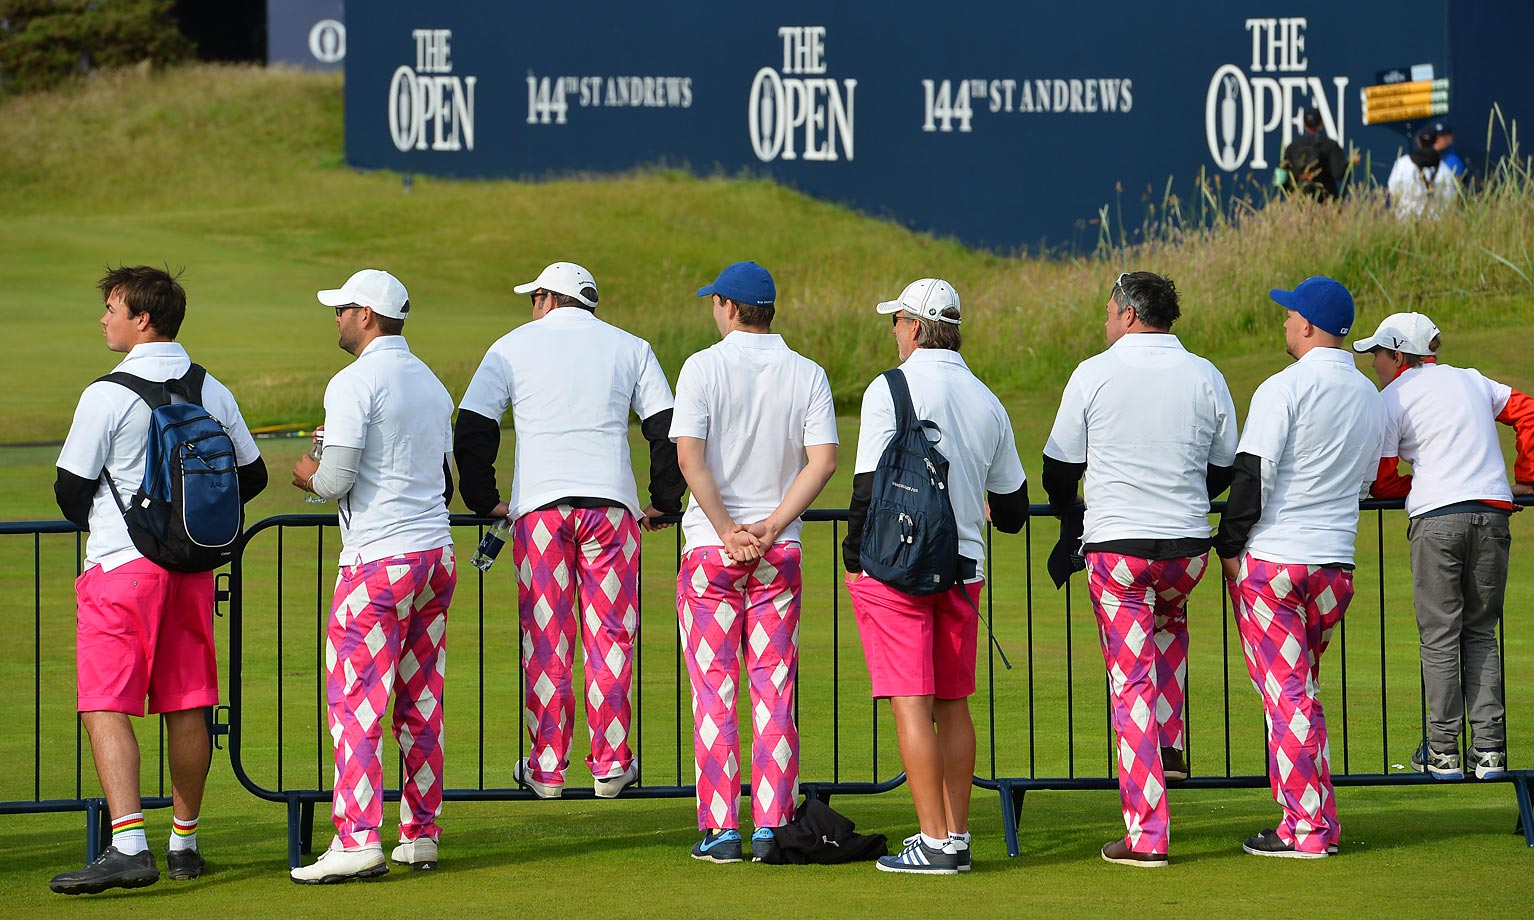 Fans beside the 2nd tee during the first round of the 2015 British Open Golf Championship.